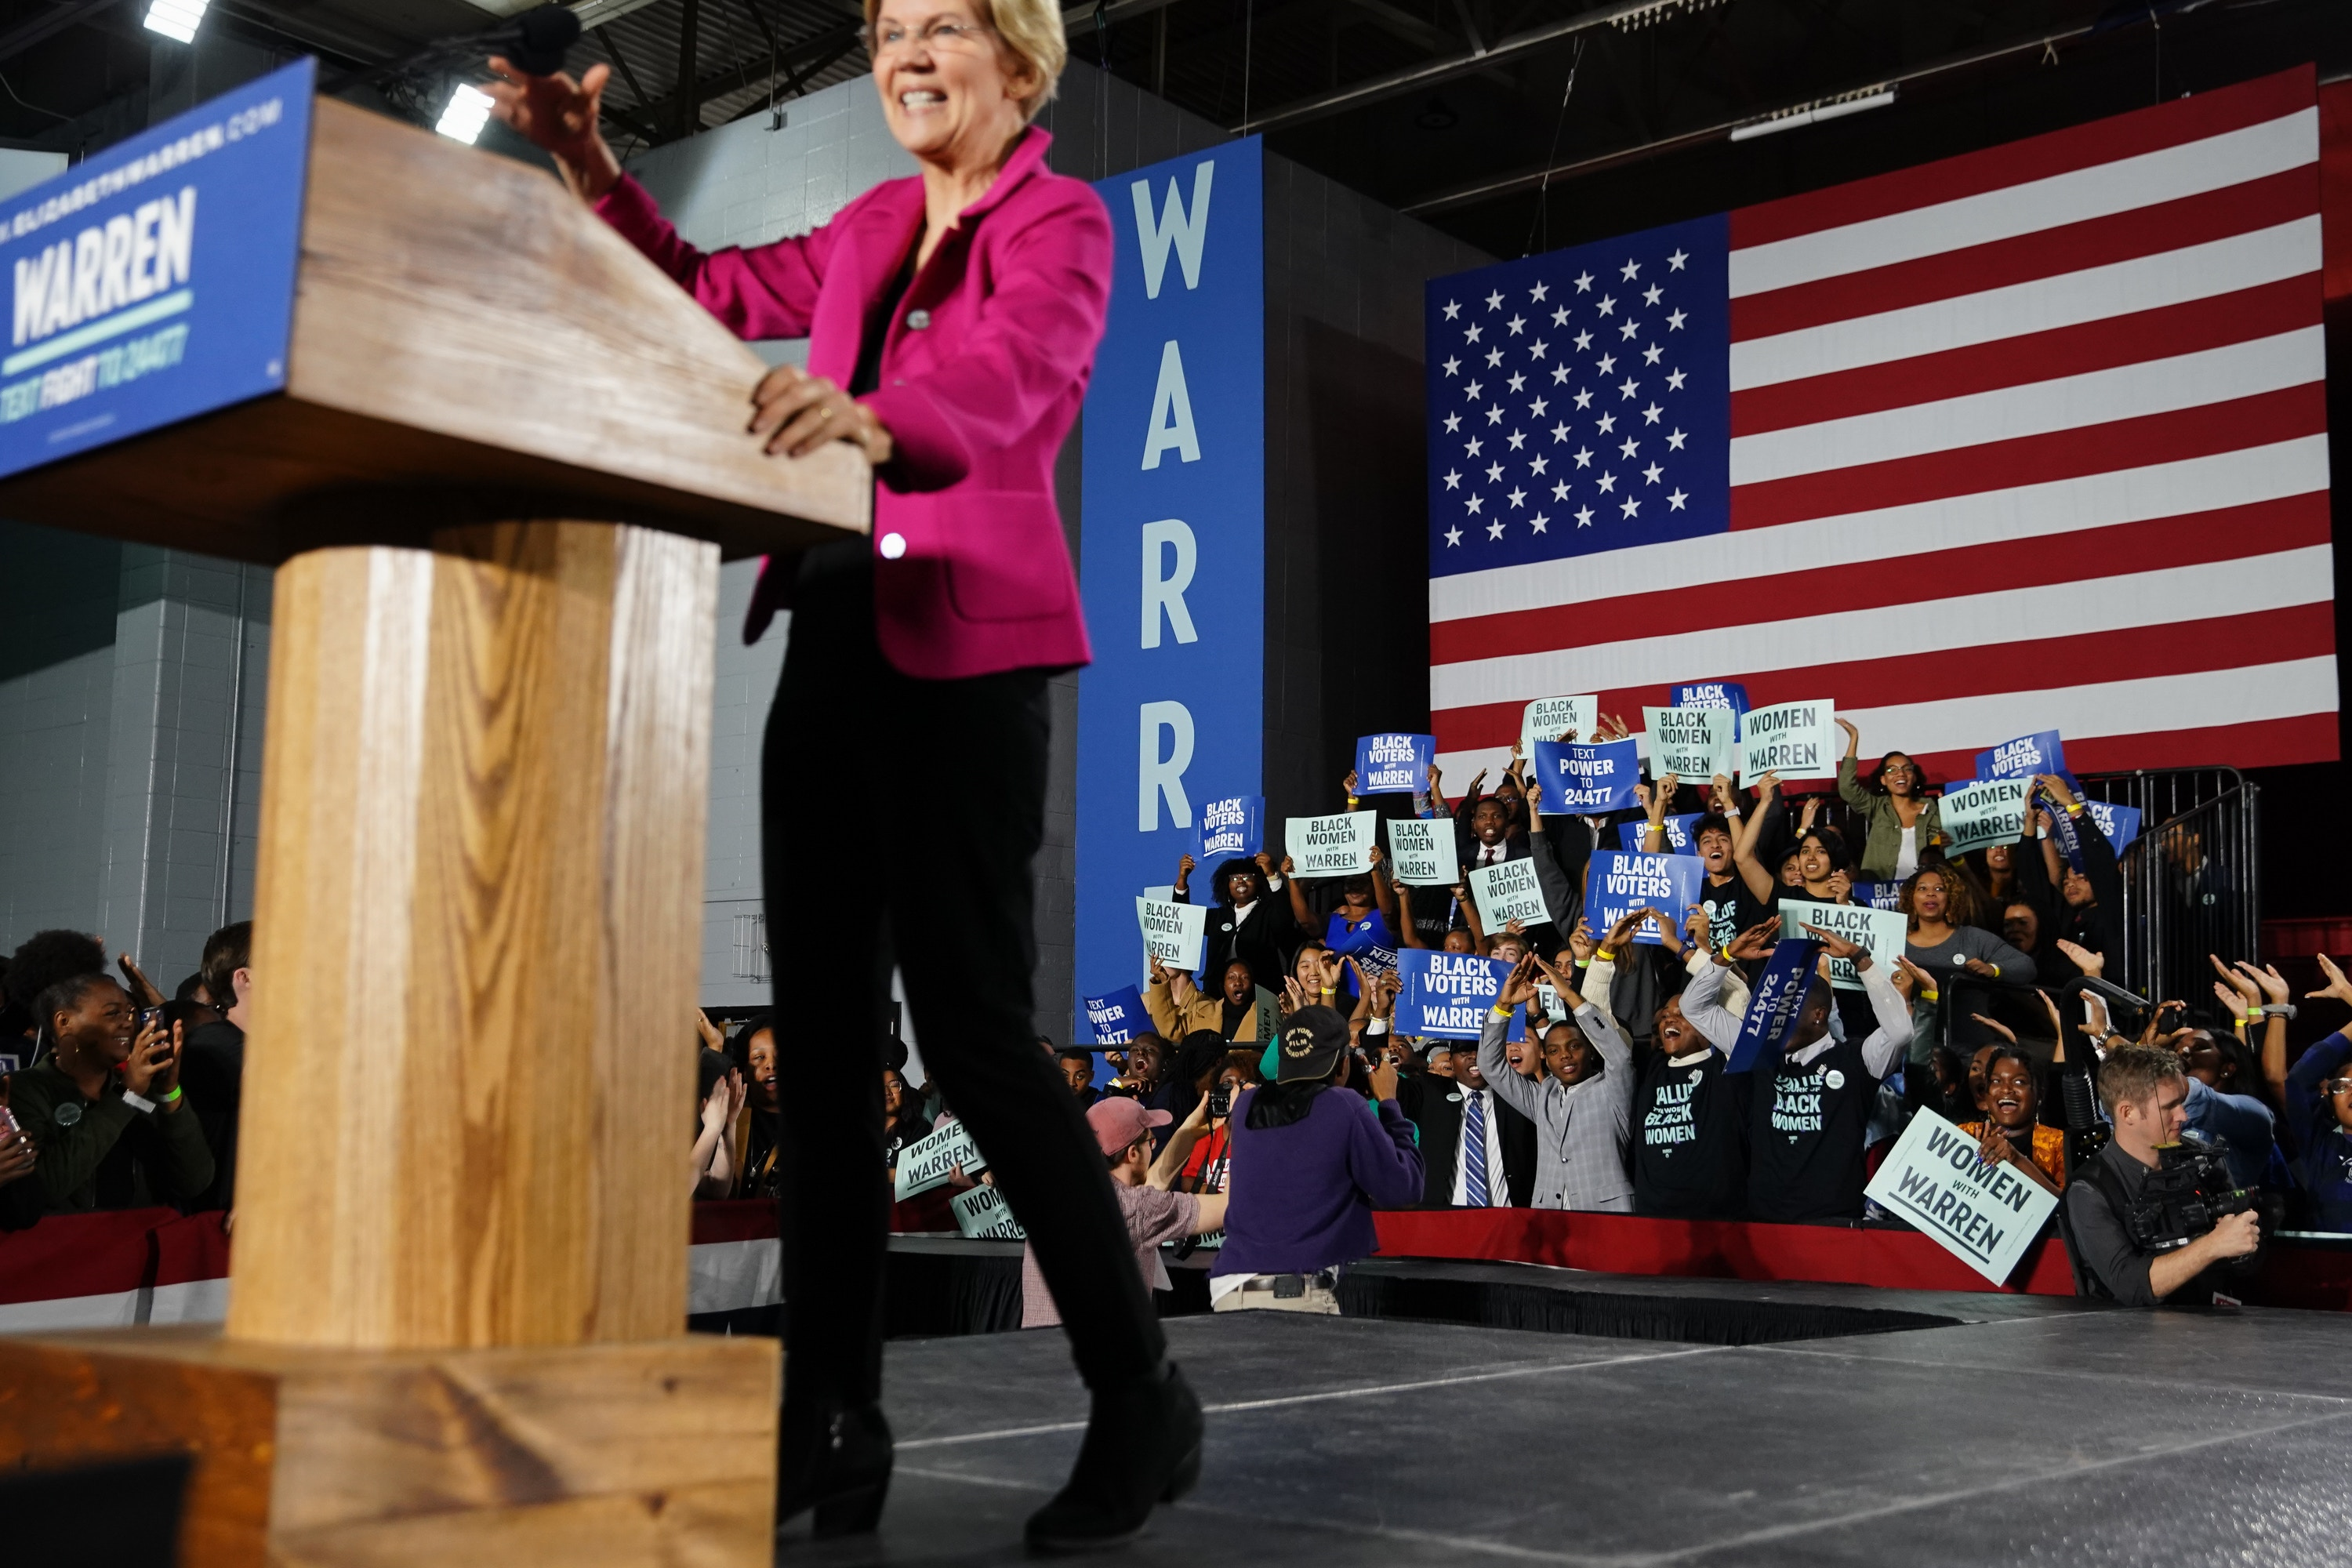 ATLANTA, GA - NOVEMBER 21: Democratic presidential candidate Sen. Elizabeth Warren (D-MA), arrives on stage at a campaign event at Clark Atlanta University on November 21, 2019 in Atlanta, Georgia. Warren, introduced by U.S. Rep. Ayanna Pressley (D-MA), spoke about workers' rights, fighting voter suppression and the accomplishments of Black women activists. (Photo by Elijah Nouvelage/Getty Images)